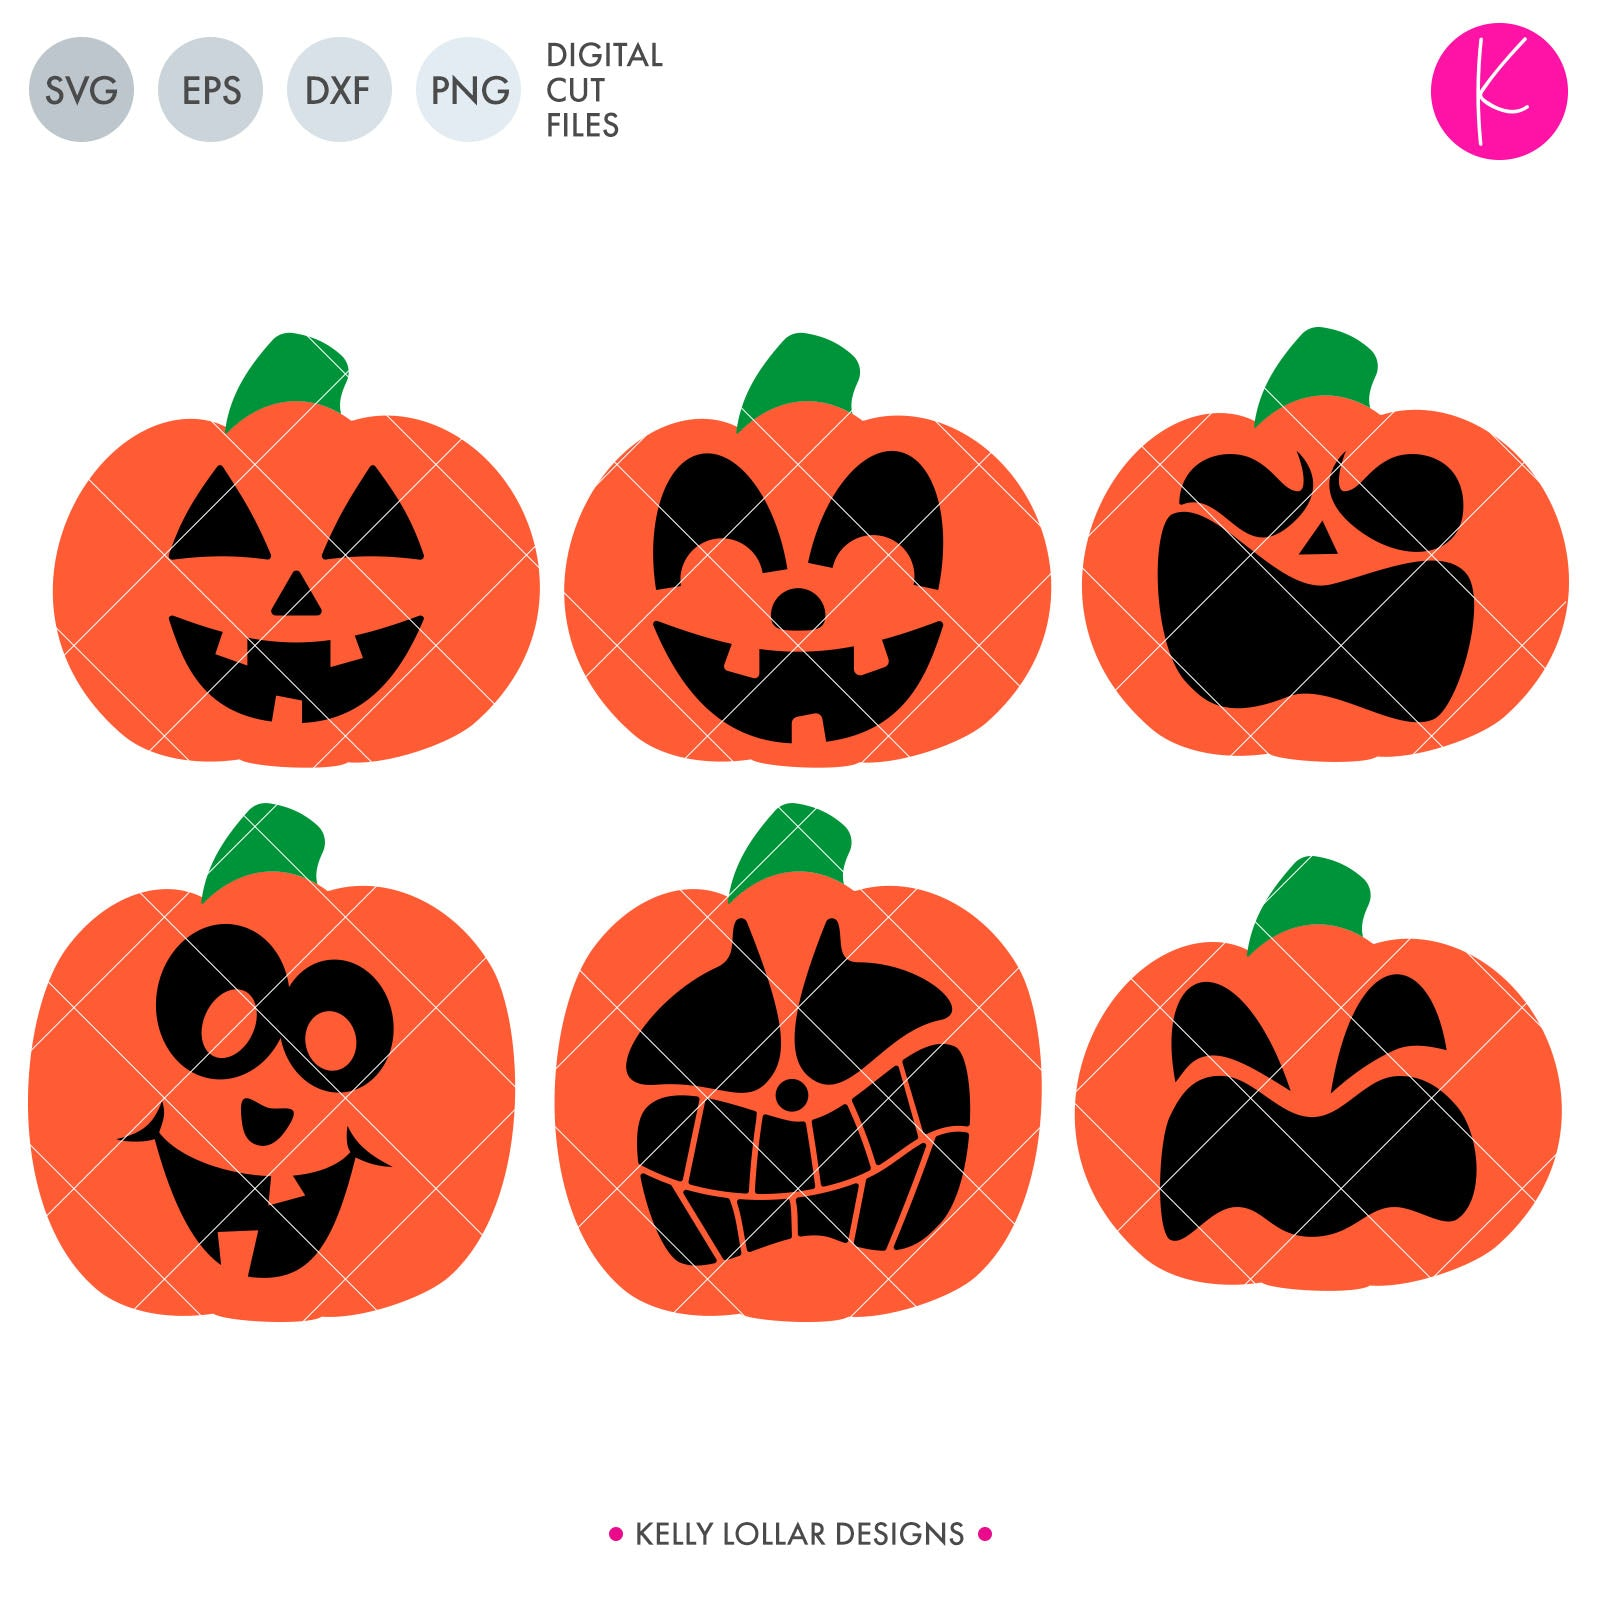 Jack O' Lanterns Pack | SVG DXF EPS PNG Cut Files Set of 6 Jack o' Lanterns for Halloween Projects | SVG DXF EPS PNG Cut Files Embellish your next Halloween project with these tradition, funny and scared jack o' lanterns.